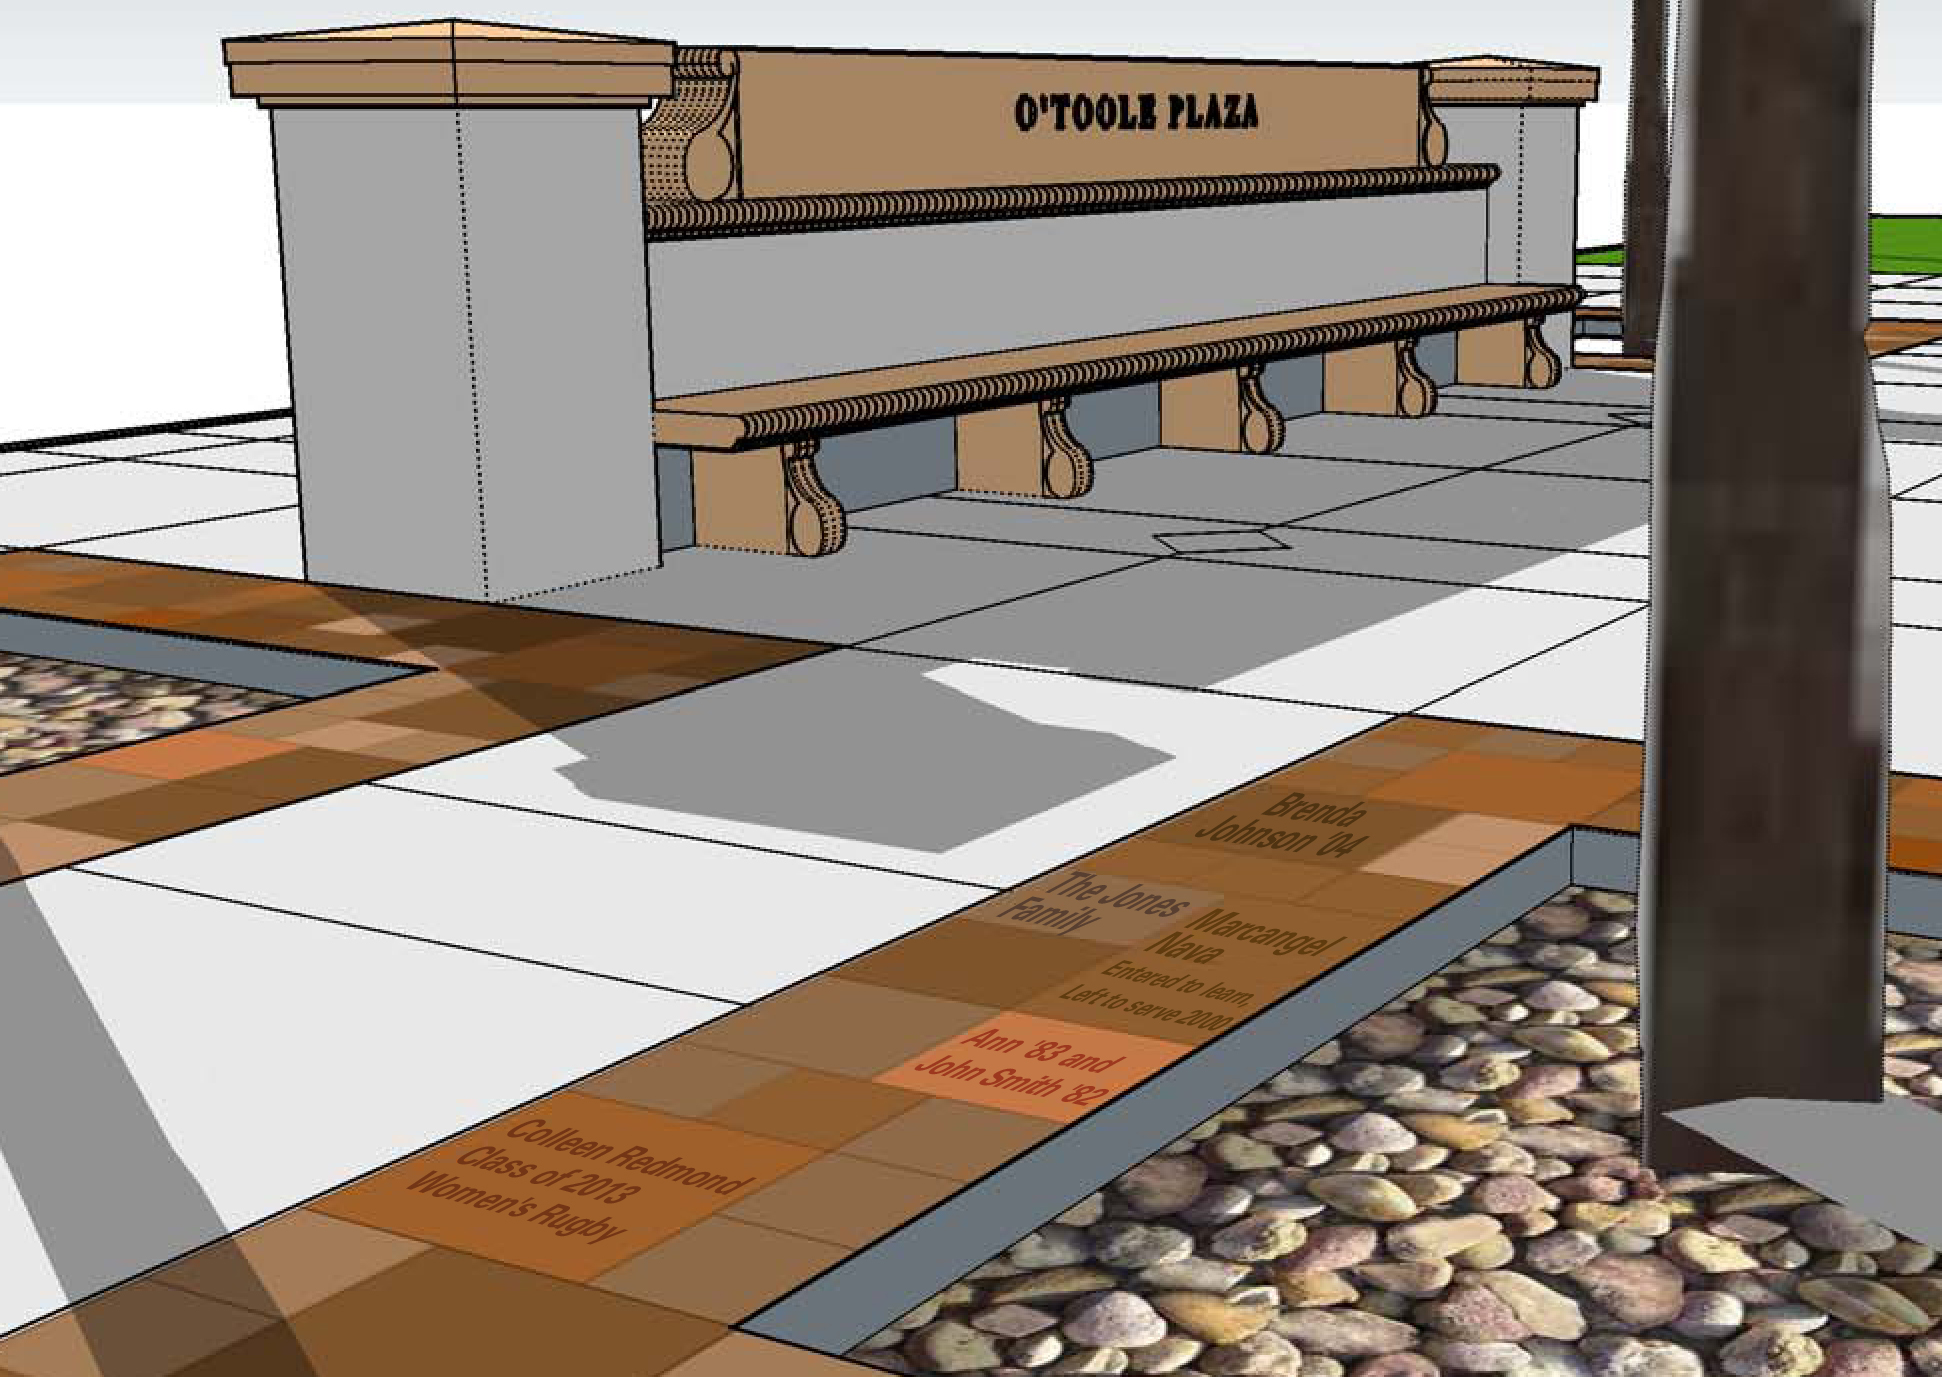 Illustration of pavers around the recreation center.